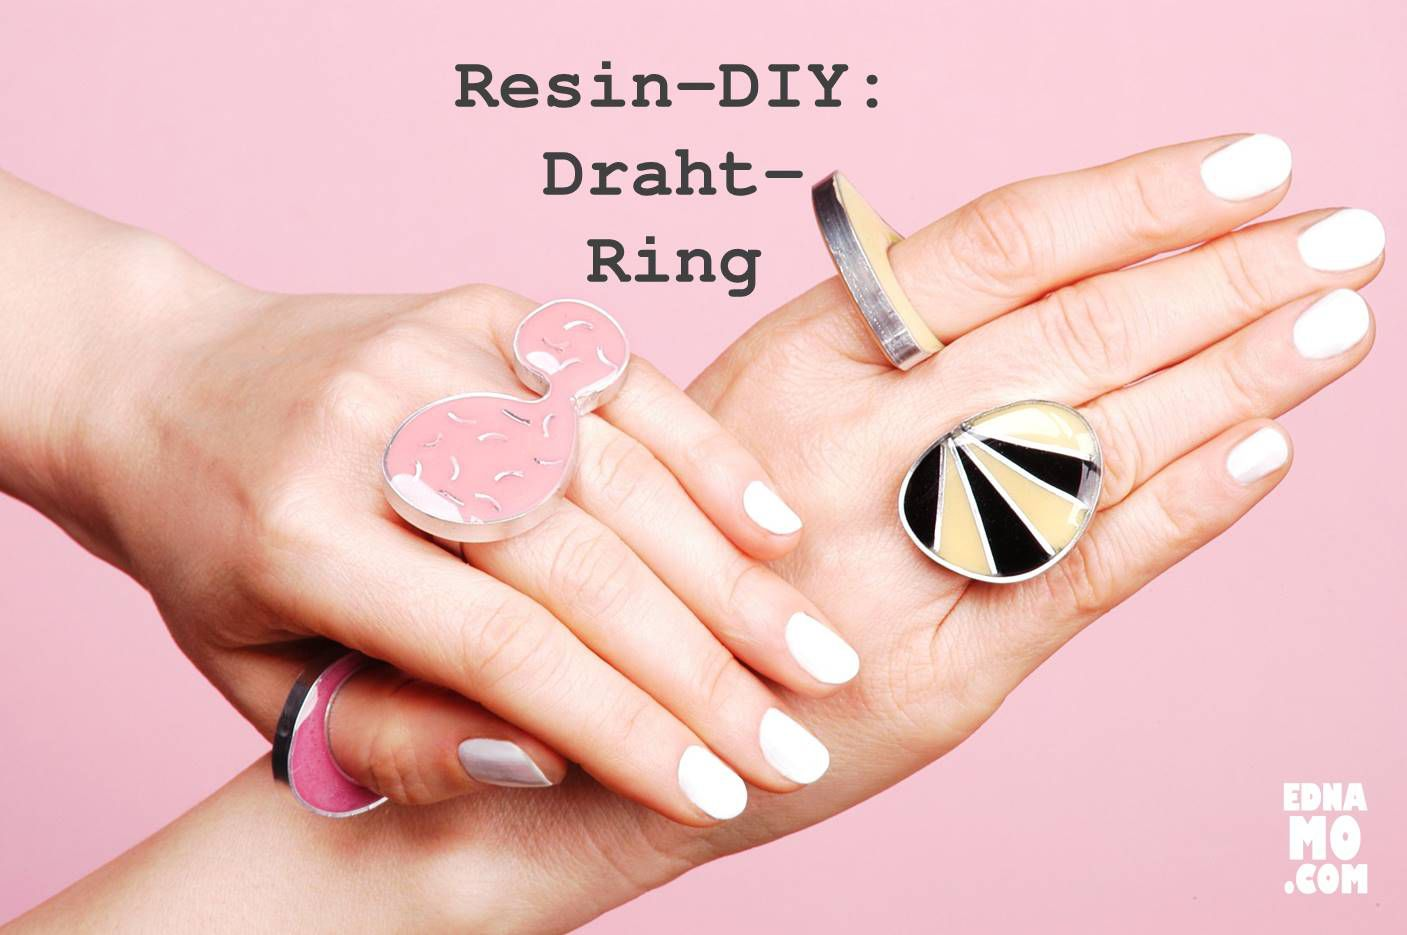 Resin-DIY: Draht-Ring